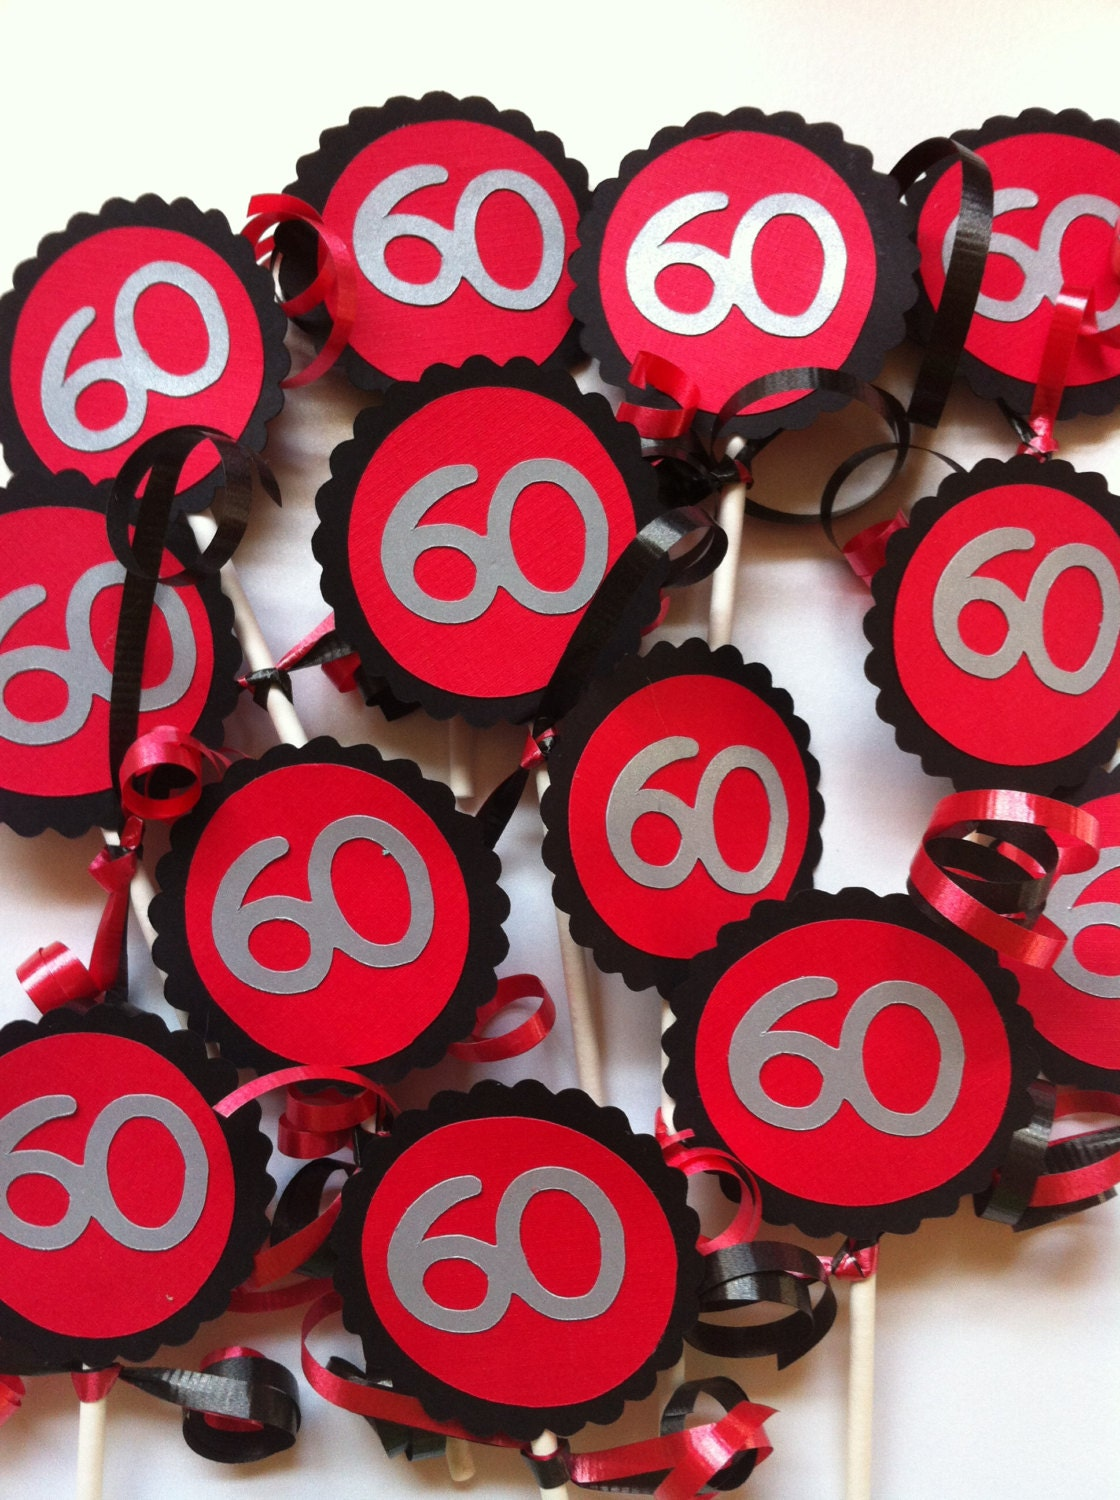 60th birthday decorations cupcake toppers for 60th birthday decoration